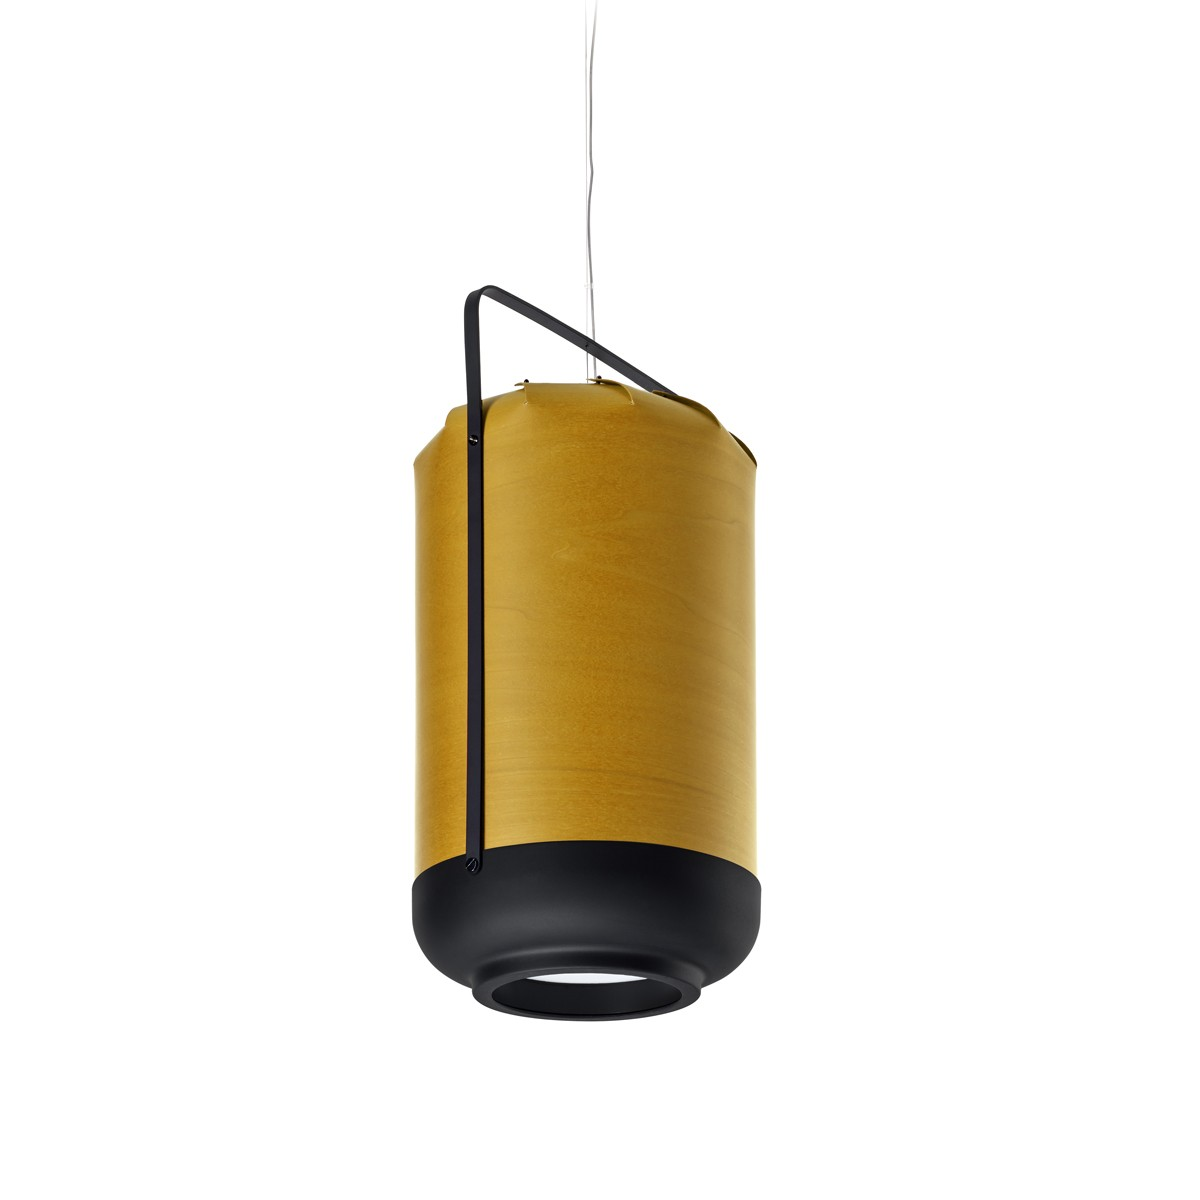 LZF Lamps Chou Tall Small Pendelleuchte, gelb